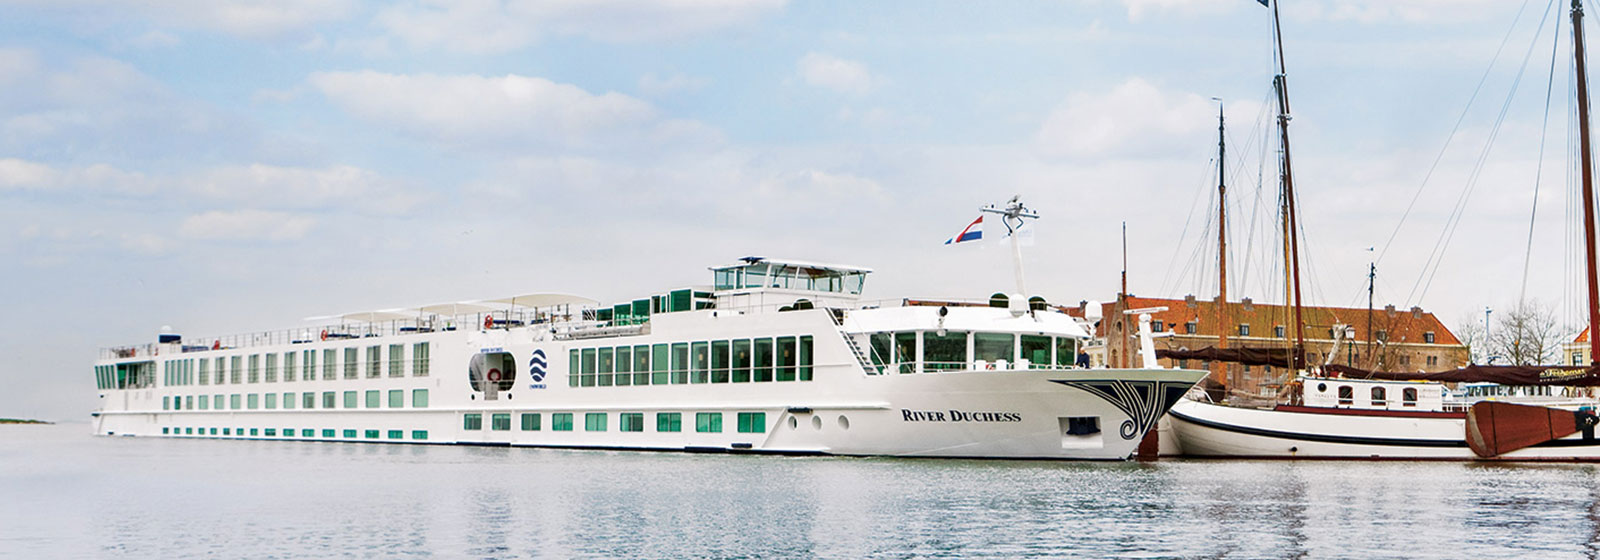 River Duchess